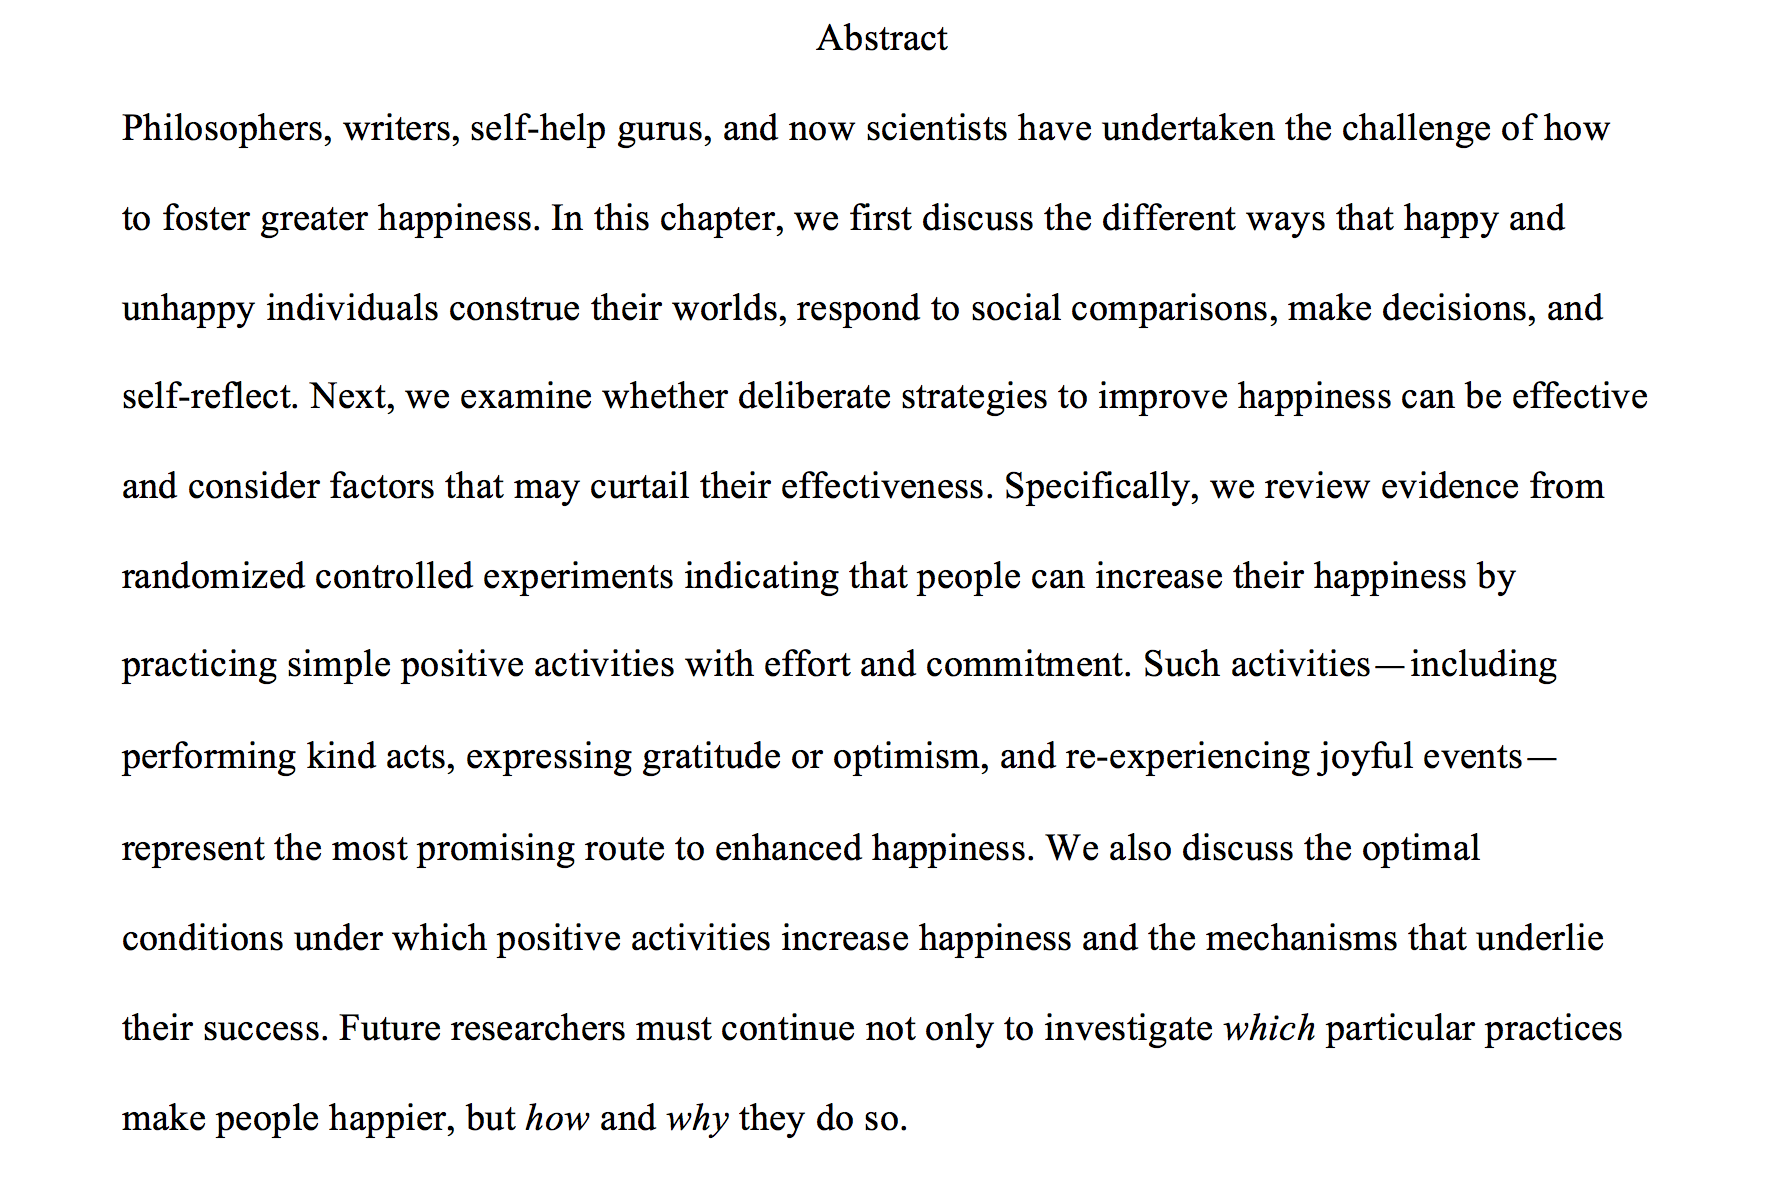 english essay on science and human happiness